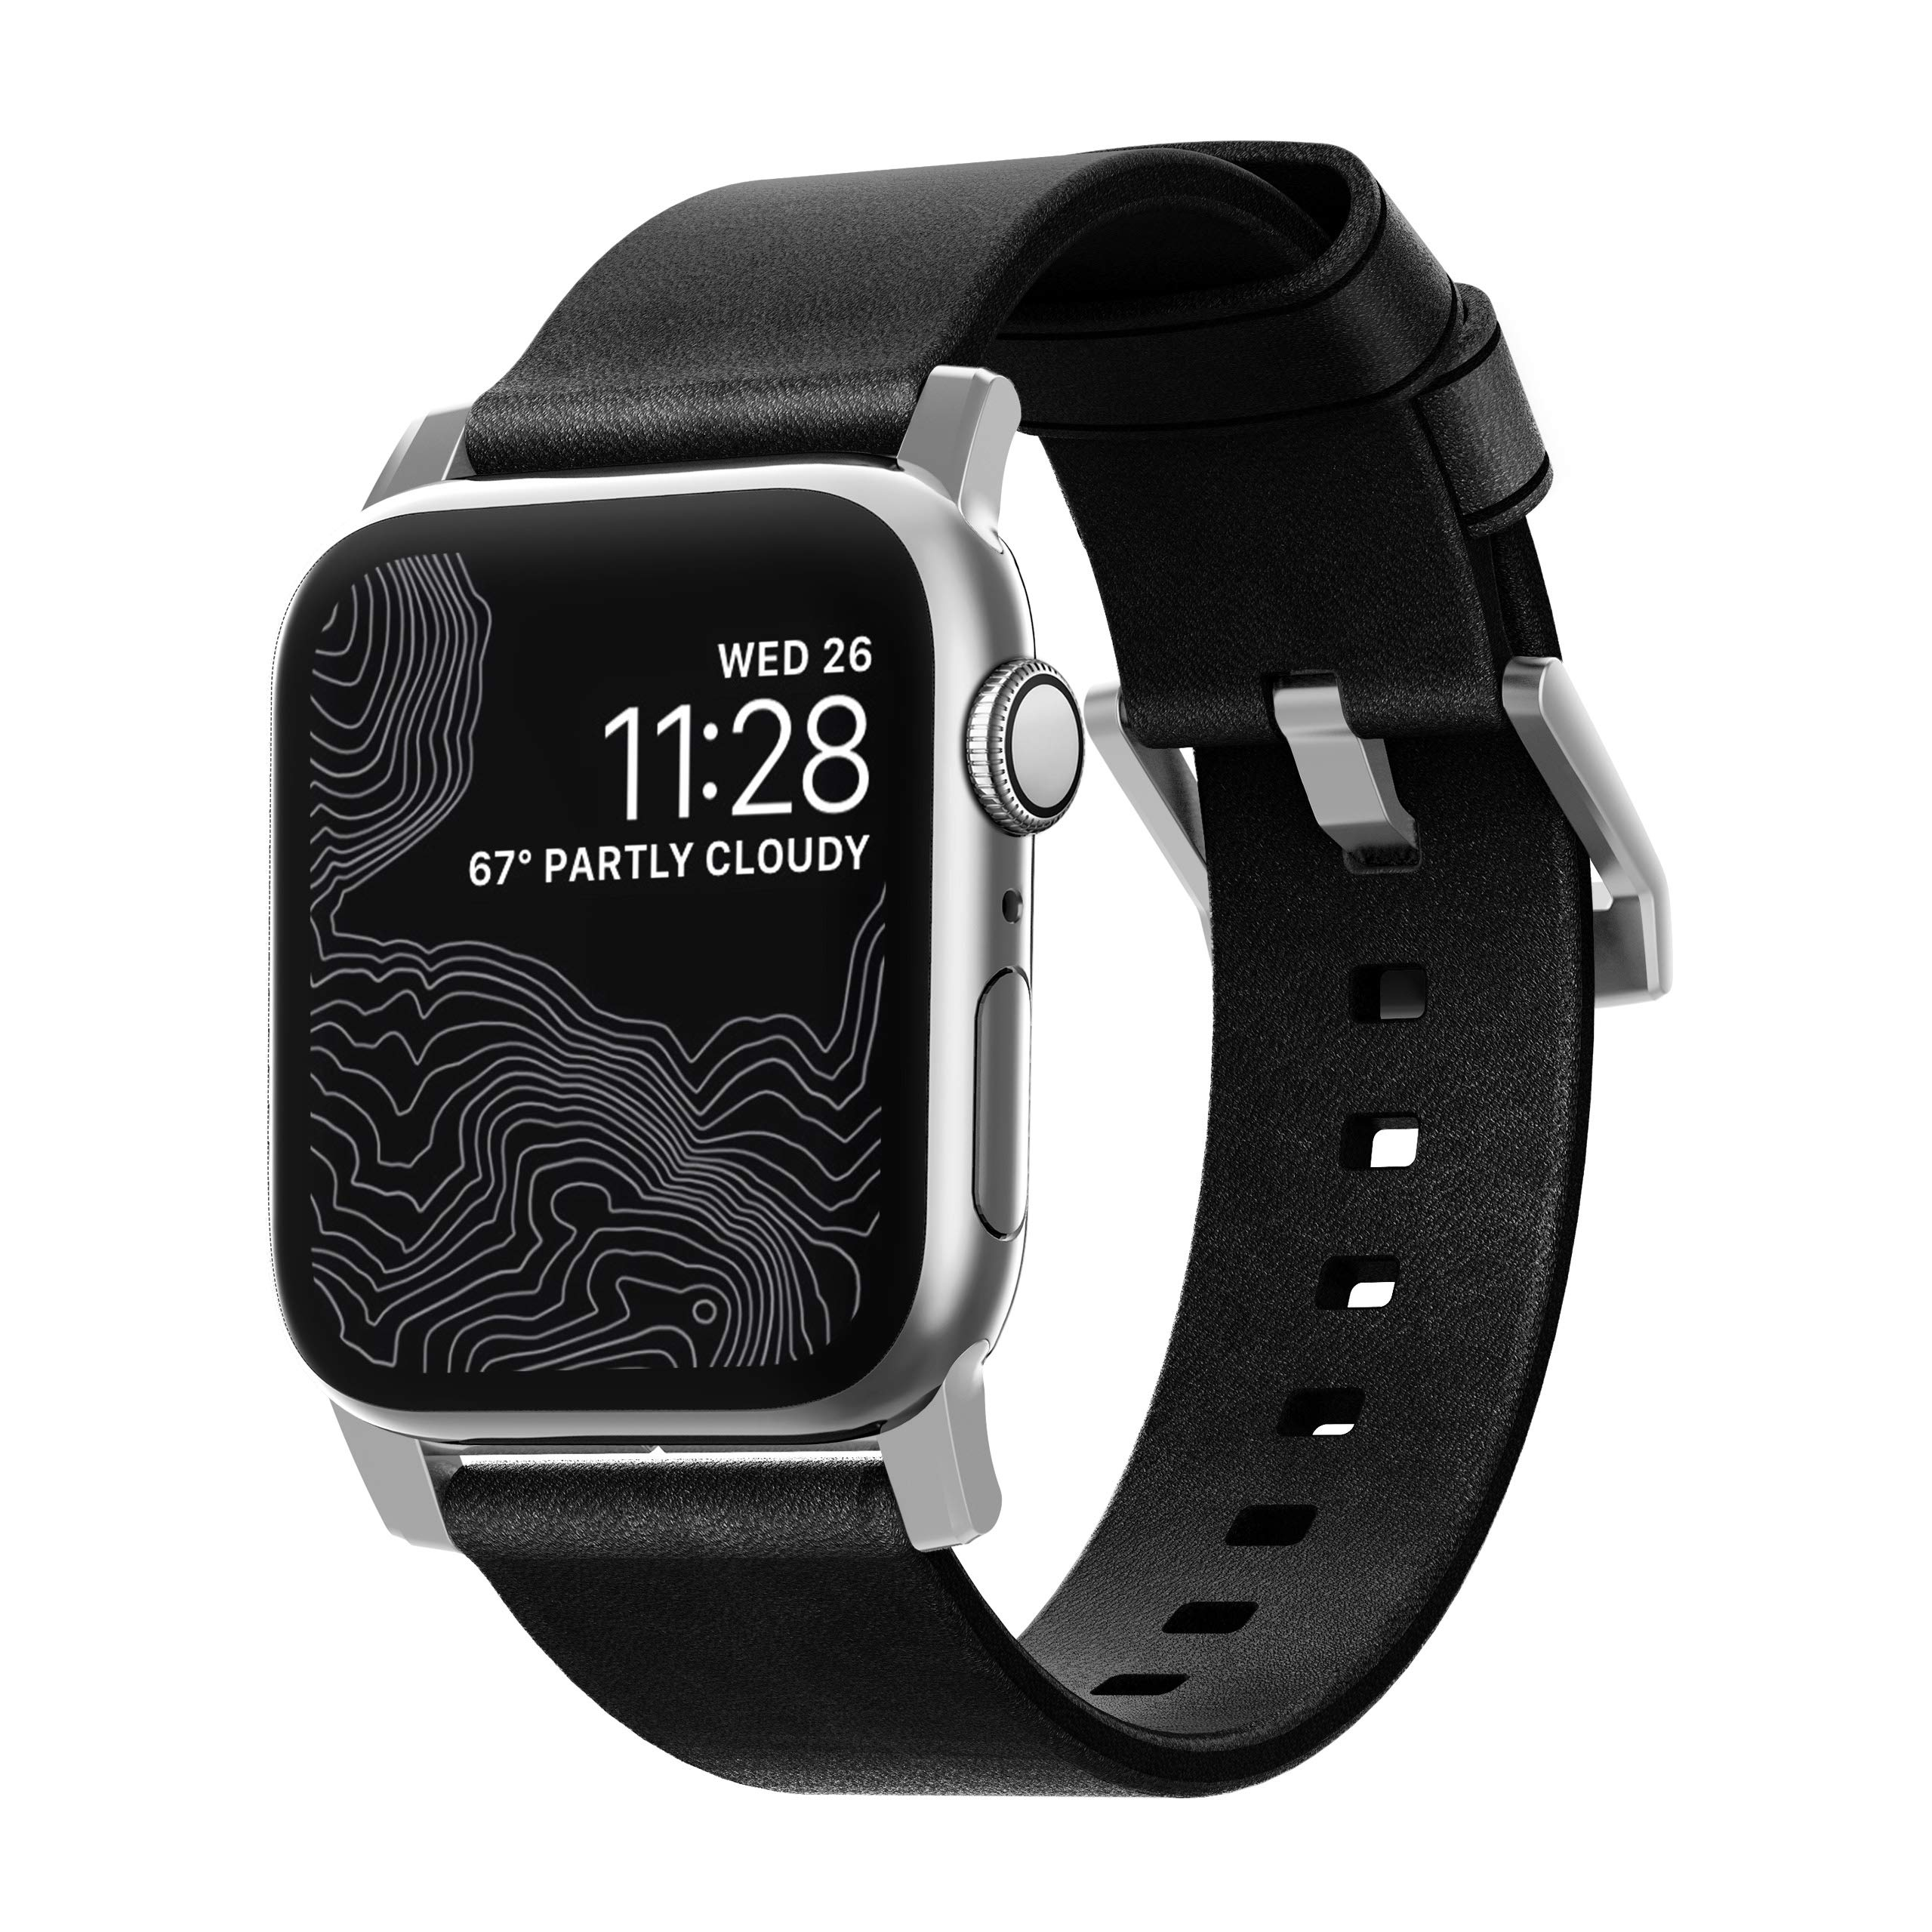 Nomad Modern Strap for Apple Watch 44mm/42mm | Black Horween Leather | Silver Hardware by Nomad